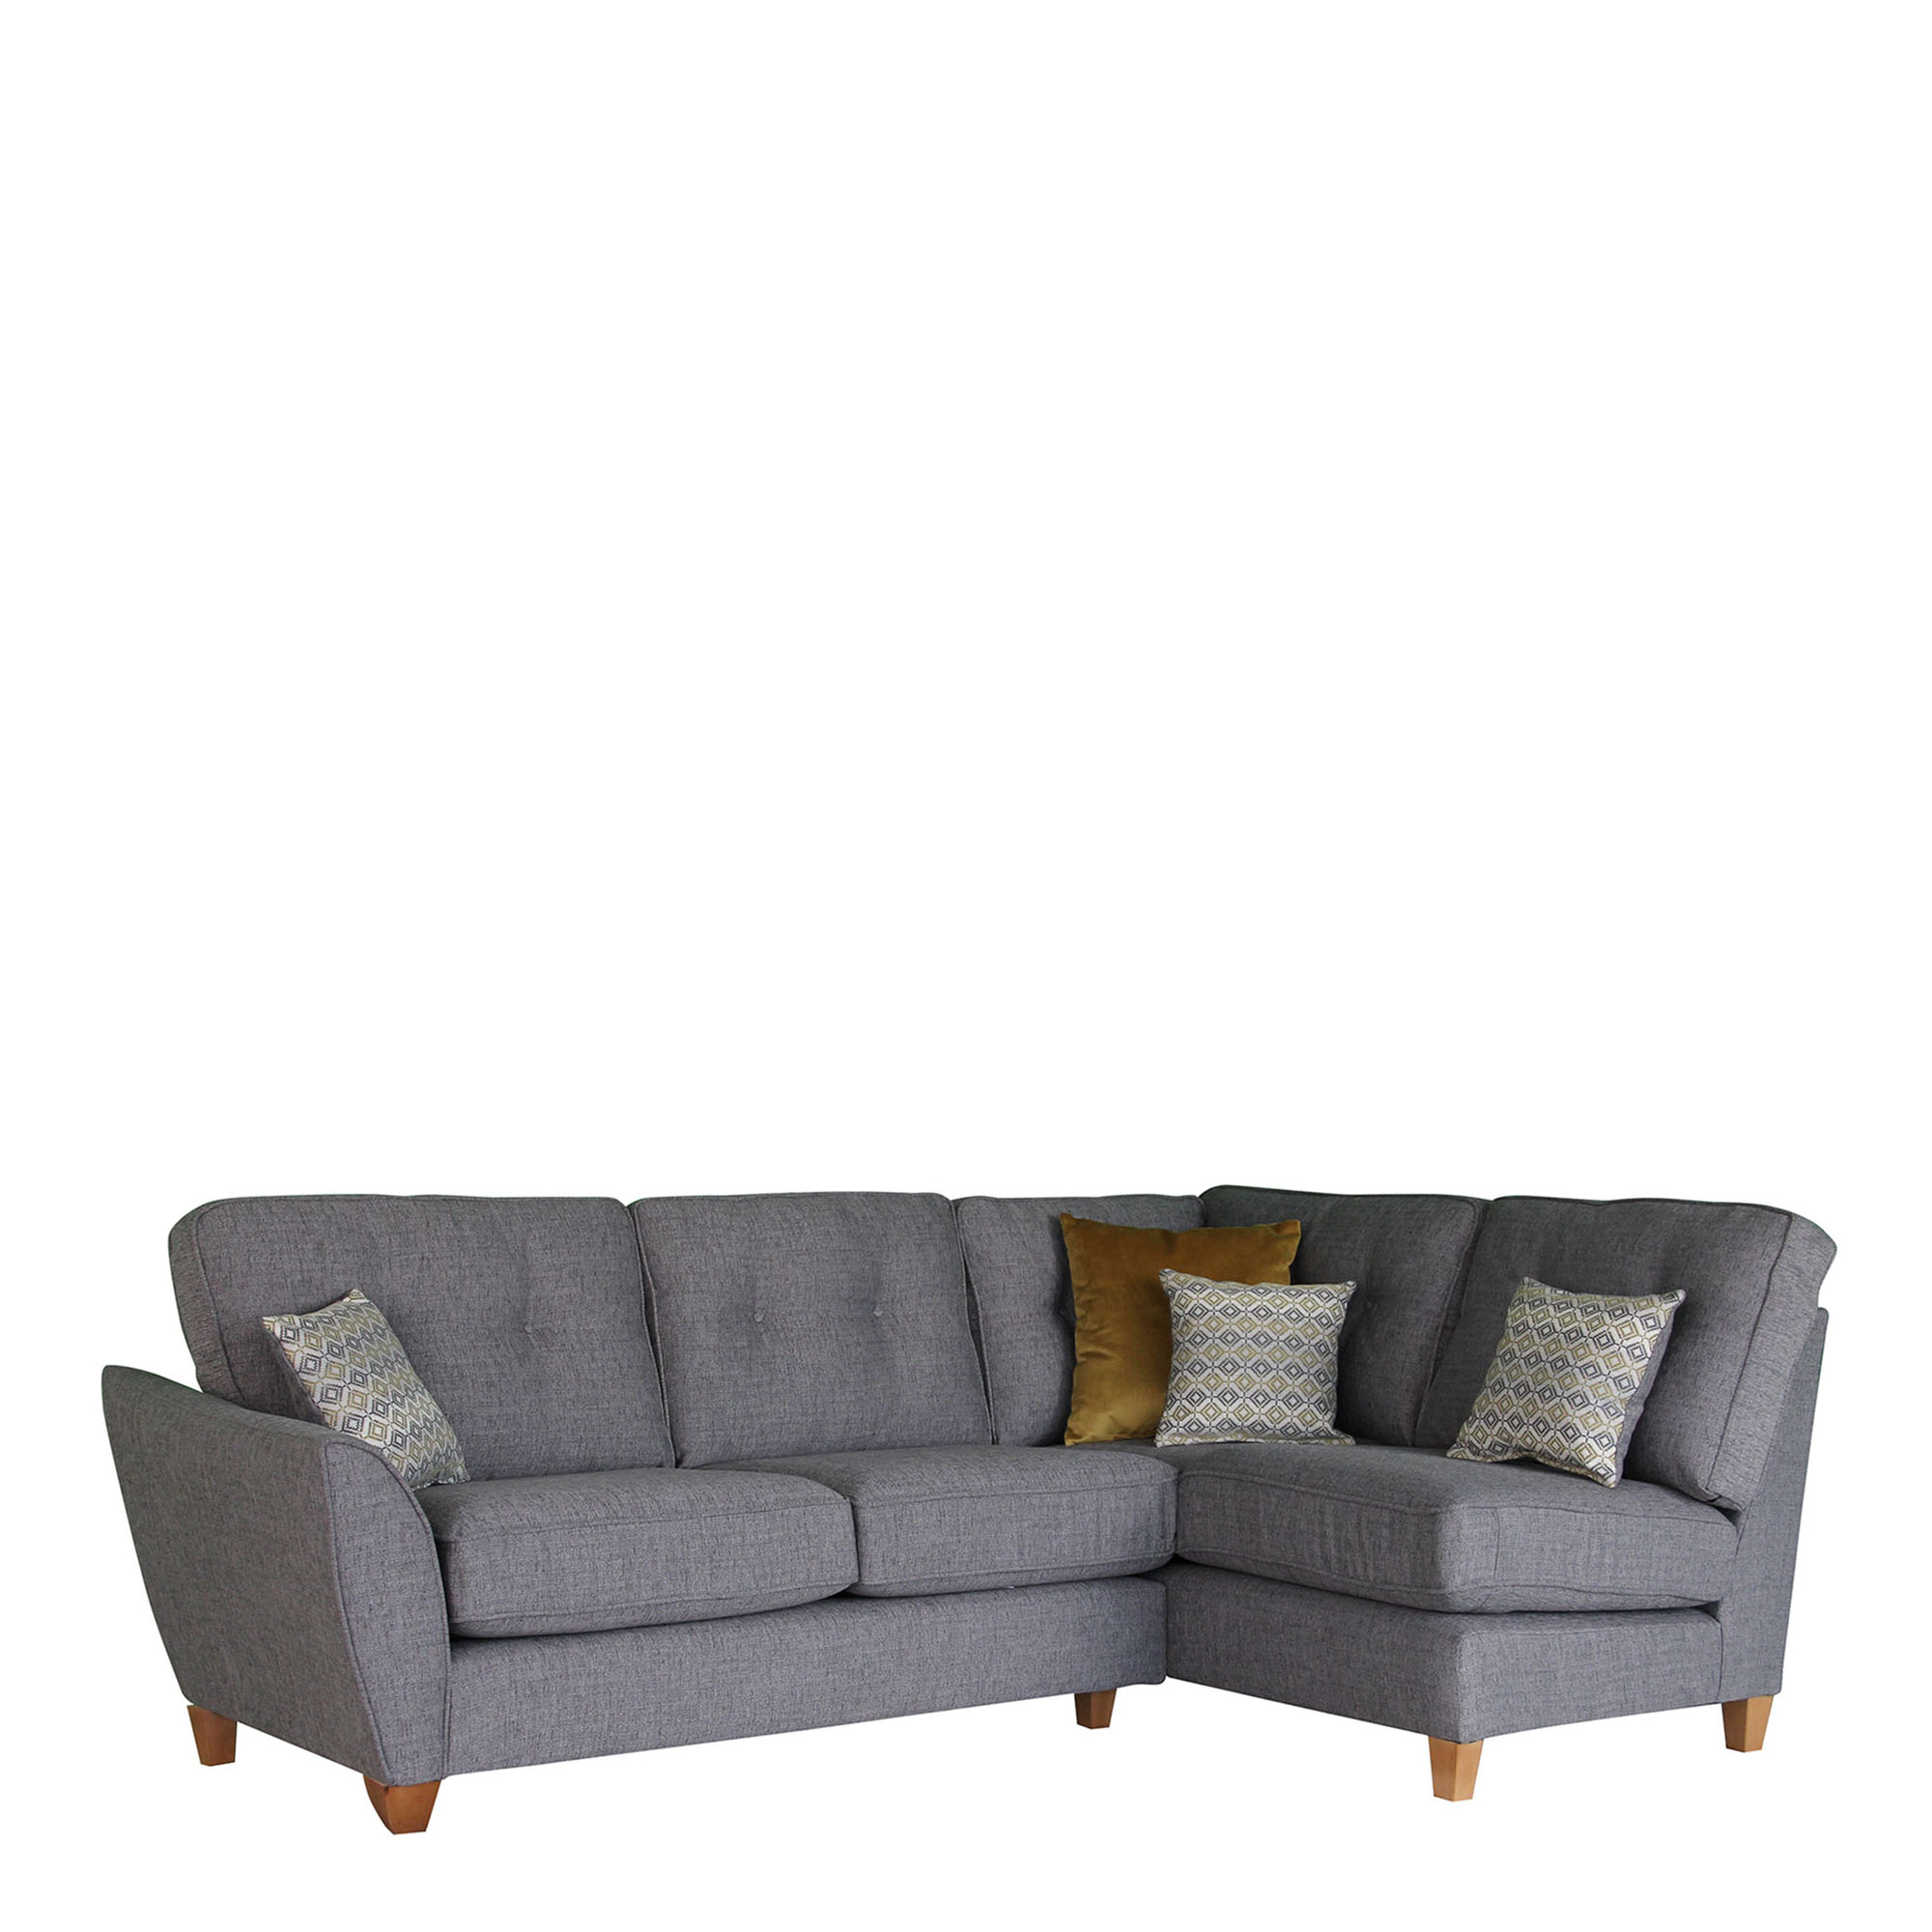 Isabelle corner sofa chaise right hand facing fishpools - Chaise isabelle sentou ...